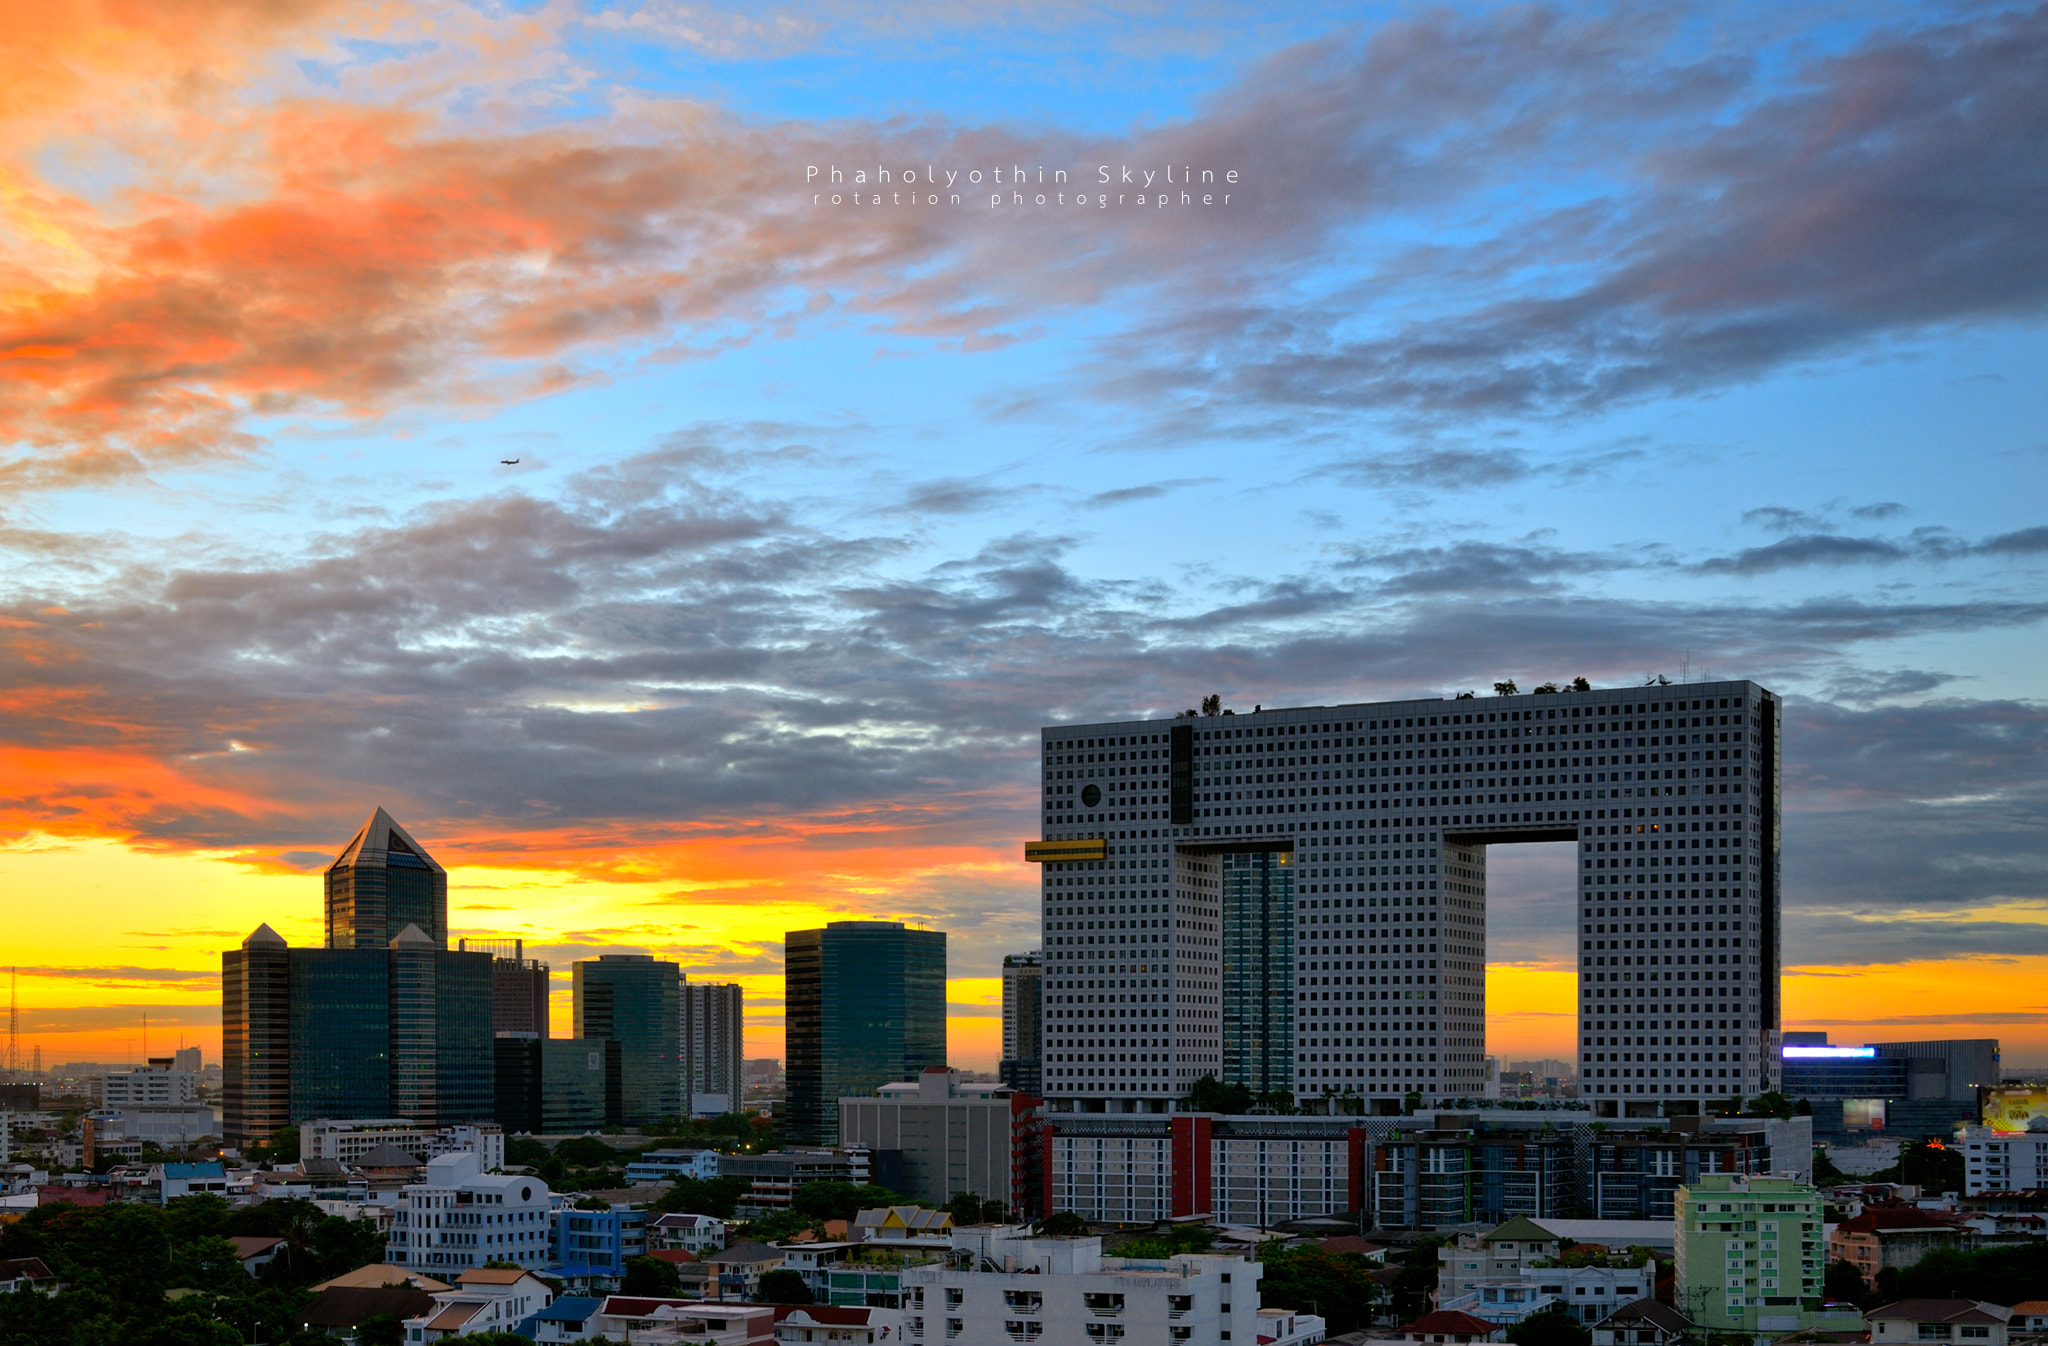 Photograph Phaholyothin Skyline by Jirawas Teekayu on 500px